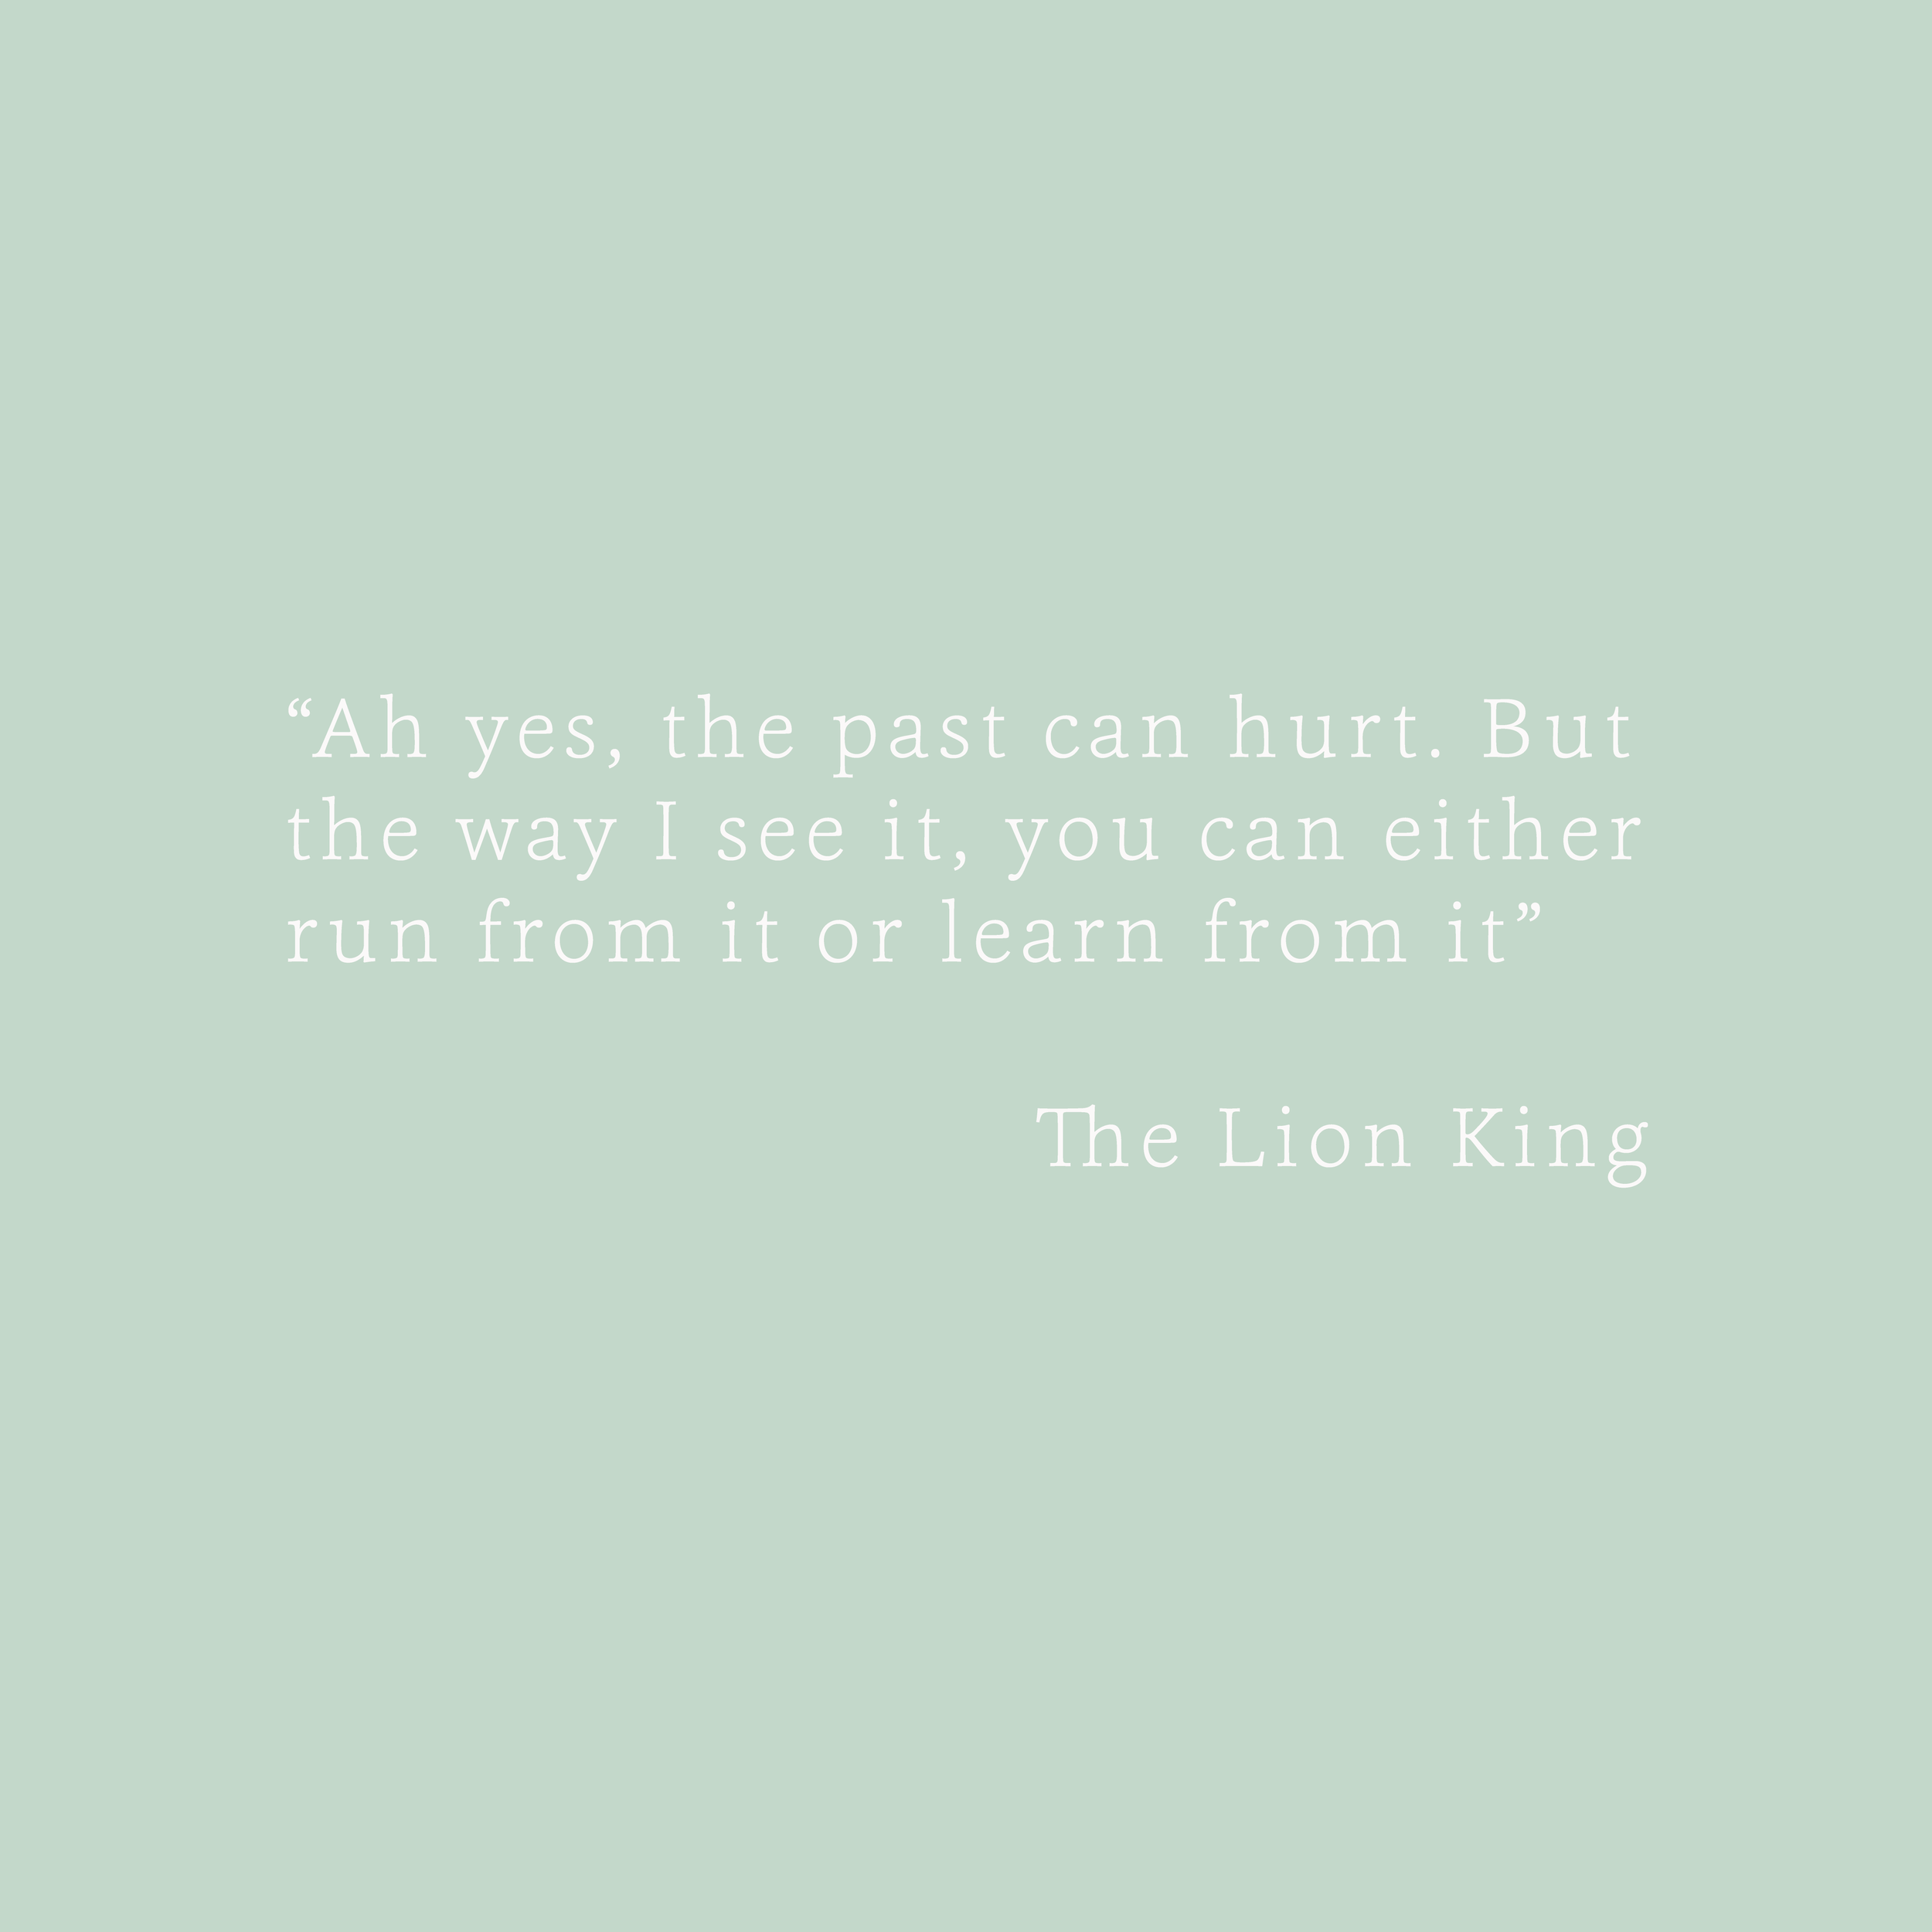 The Lion King Quote Bea & Bloom Creative Design Studio